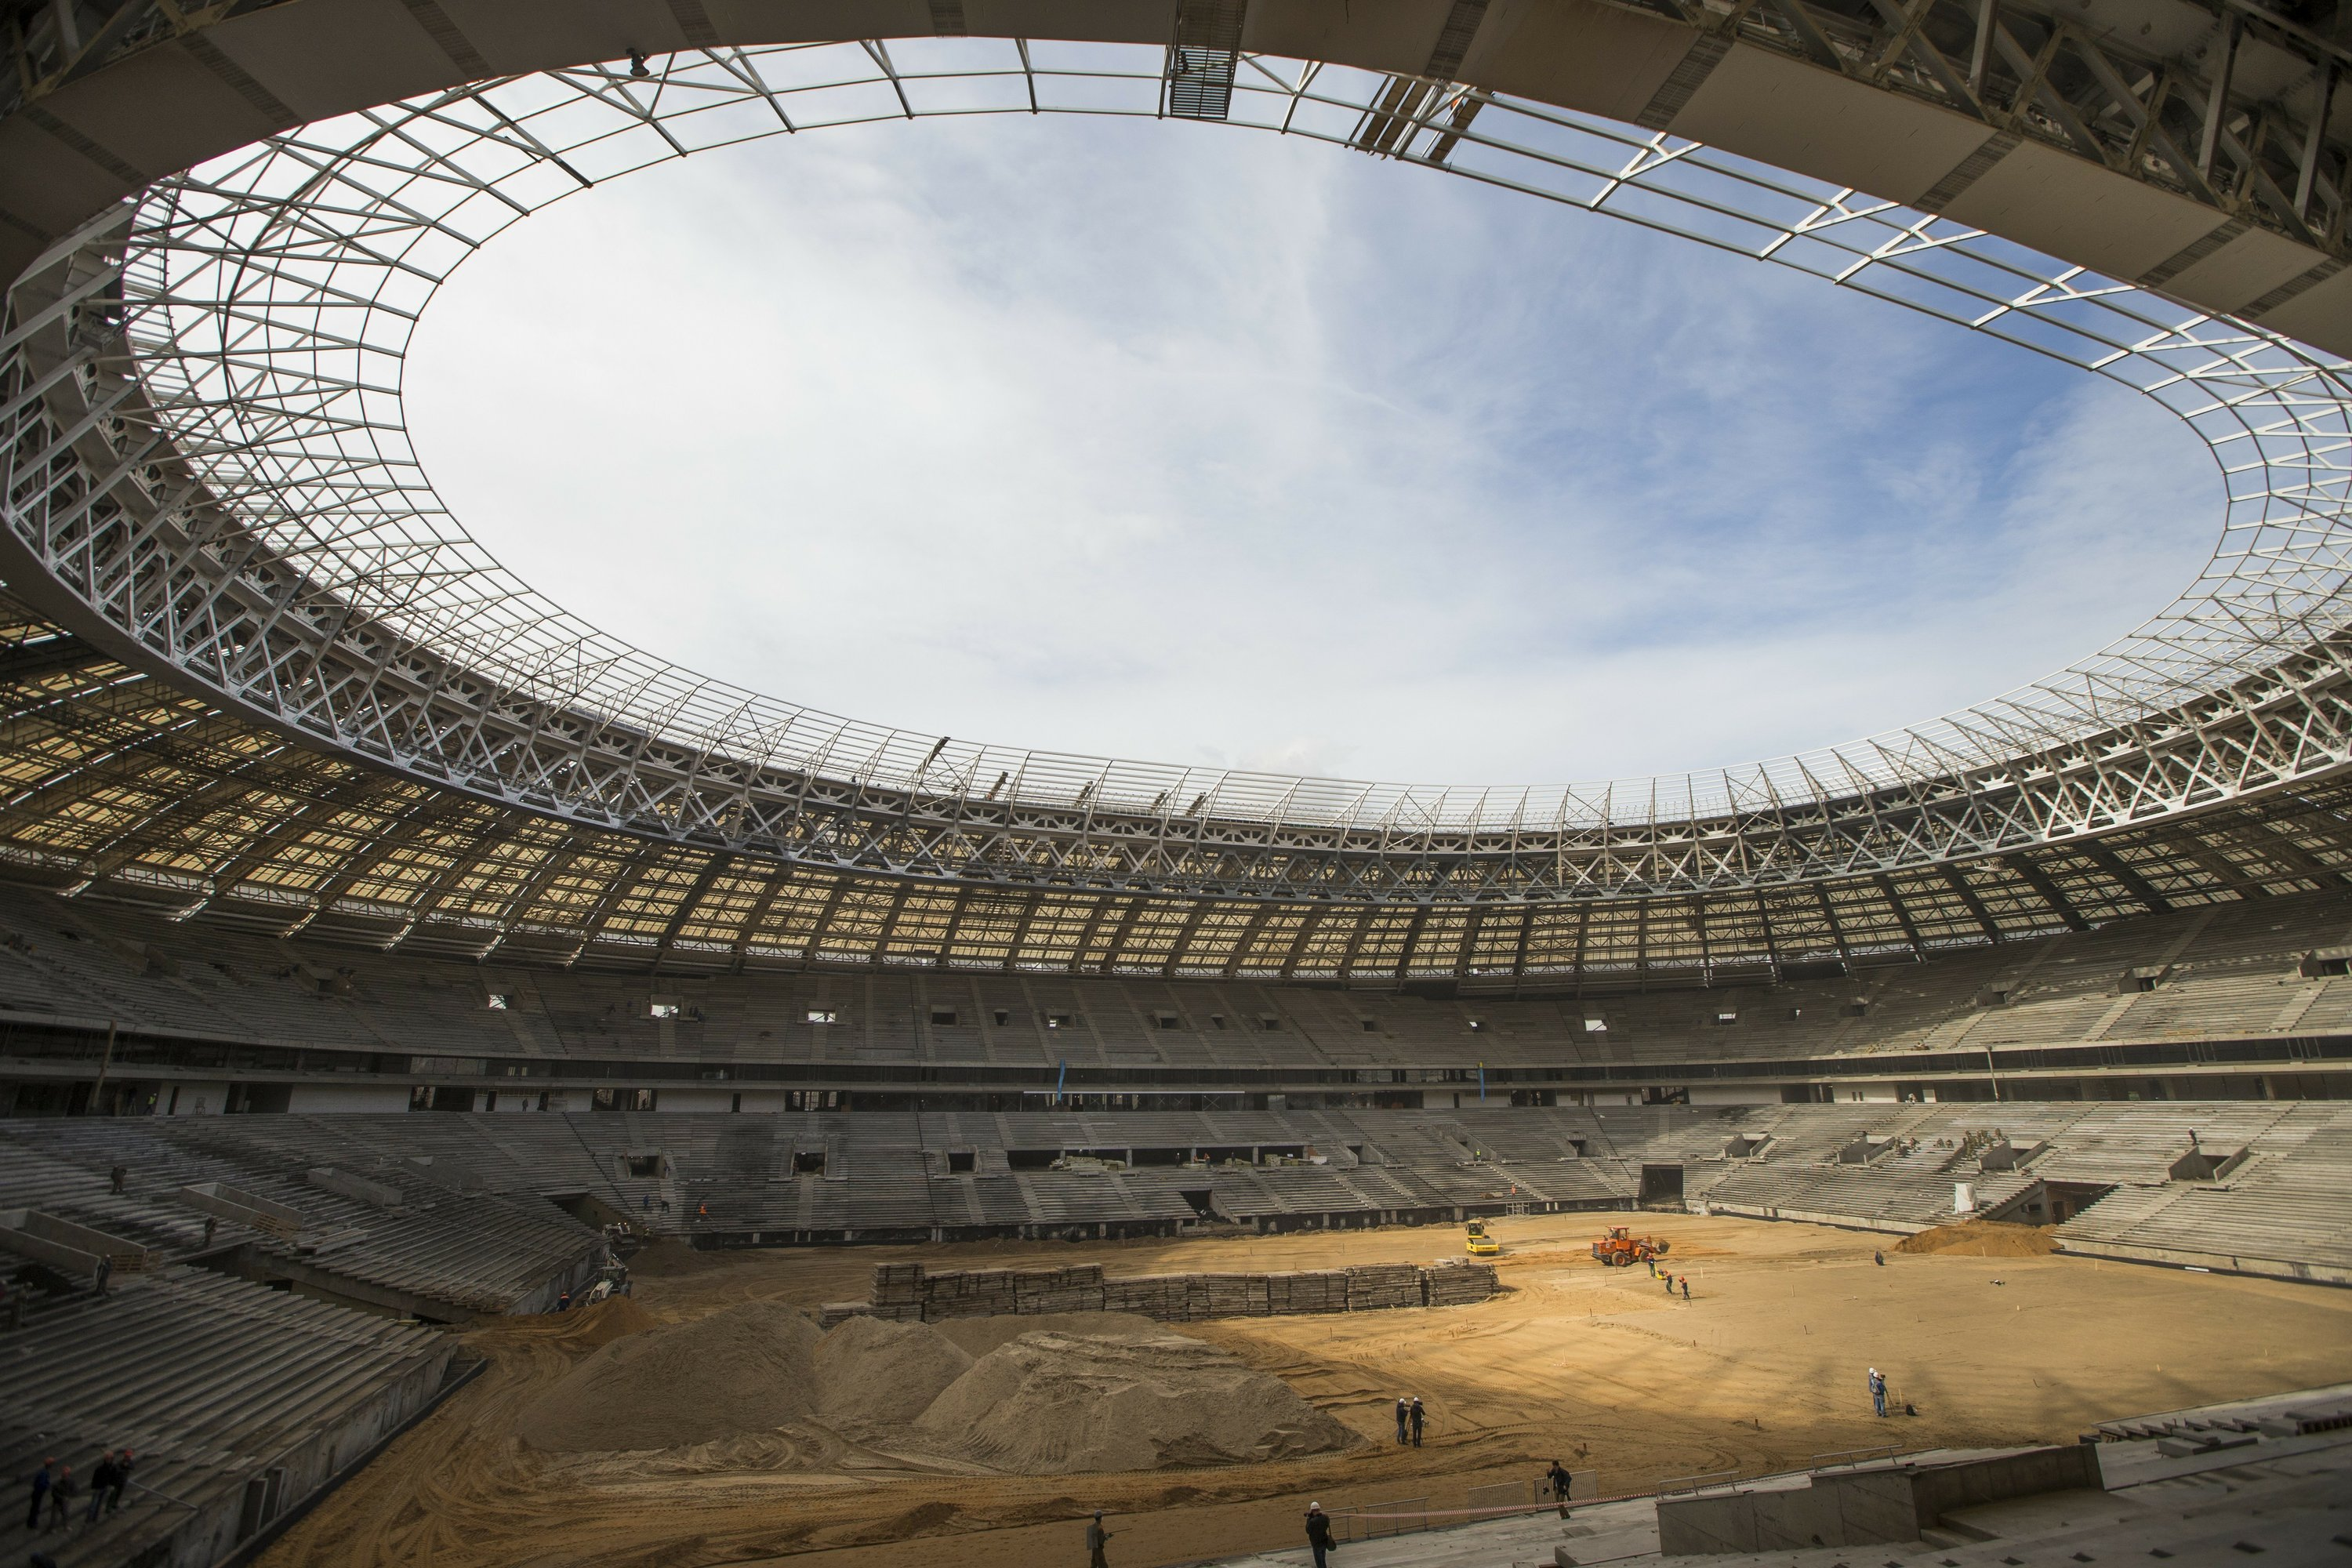 World Cup ticket prices break $1,000 barrier for 1st time